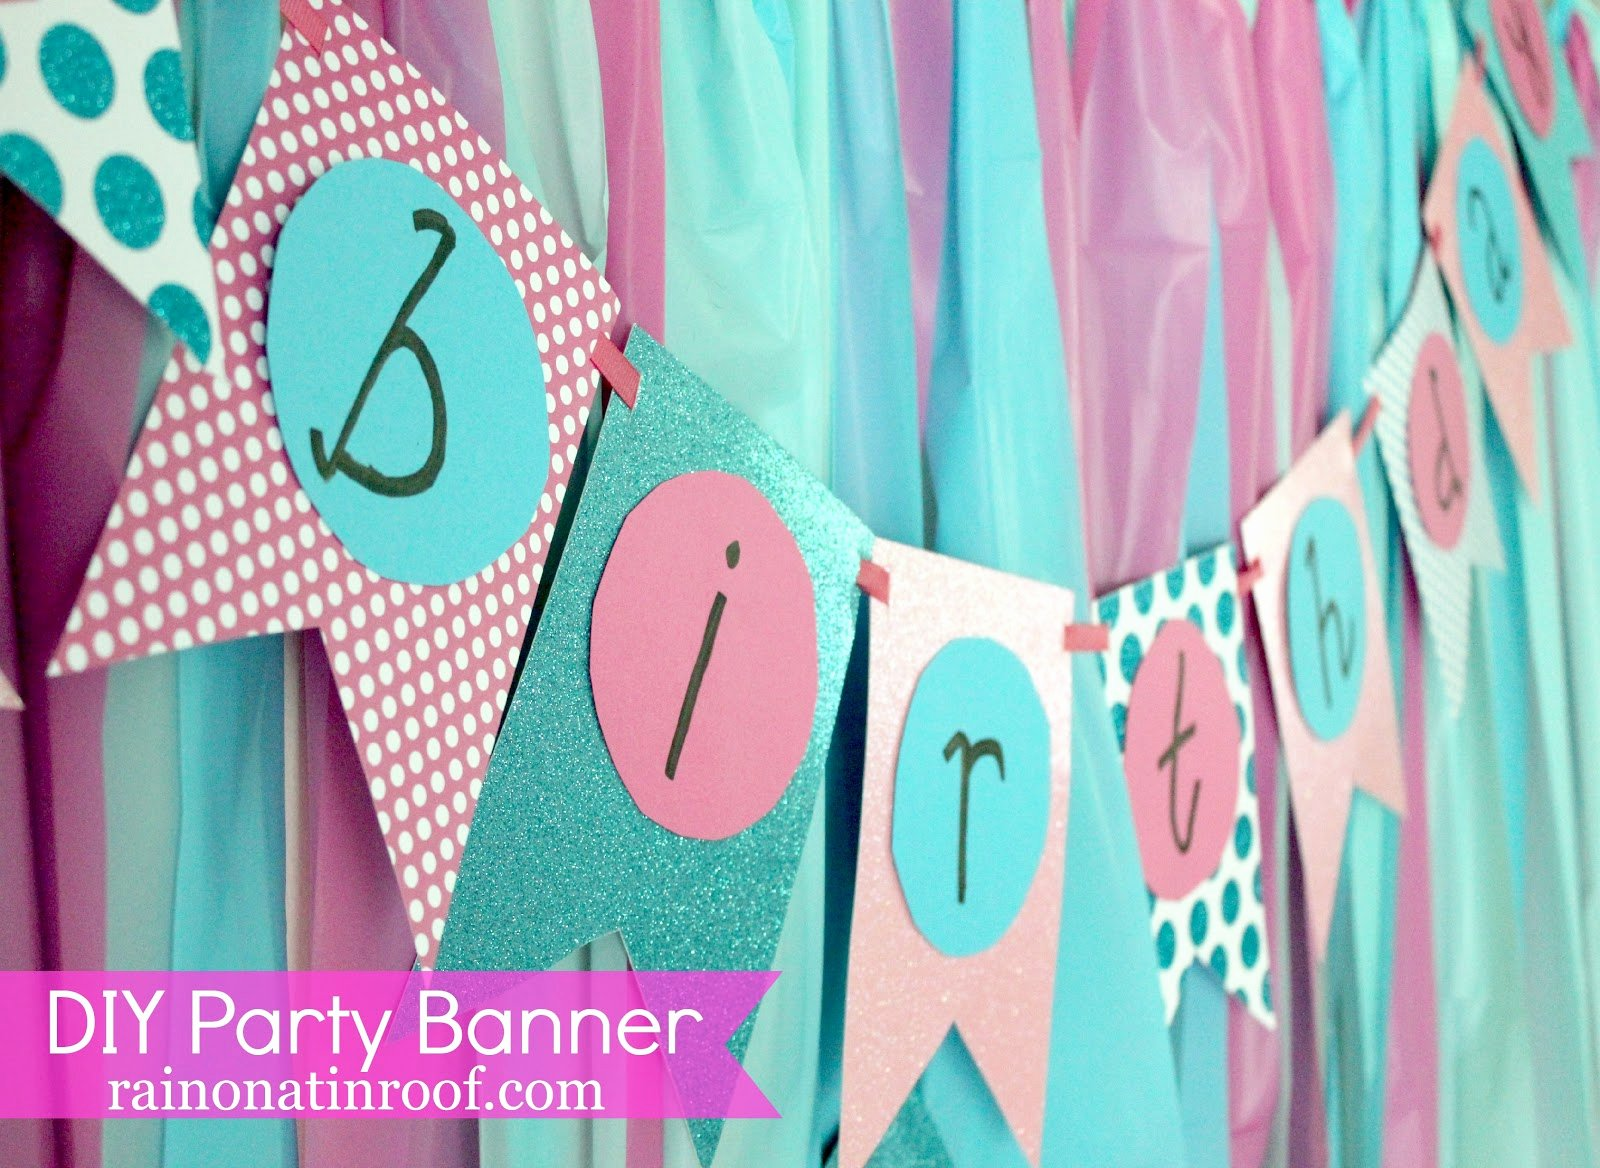 Diy Birthday Banner Template Fresh Easiest Ever Diy Birthday Banner Part 2 Rain On A Tin Roof